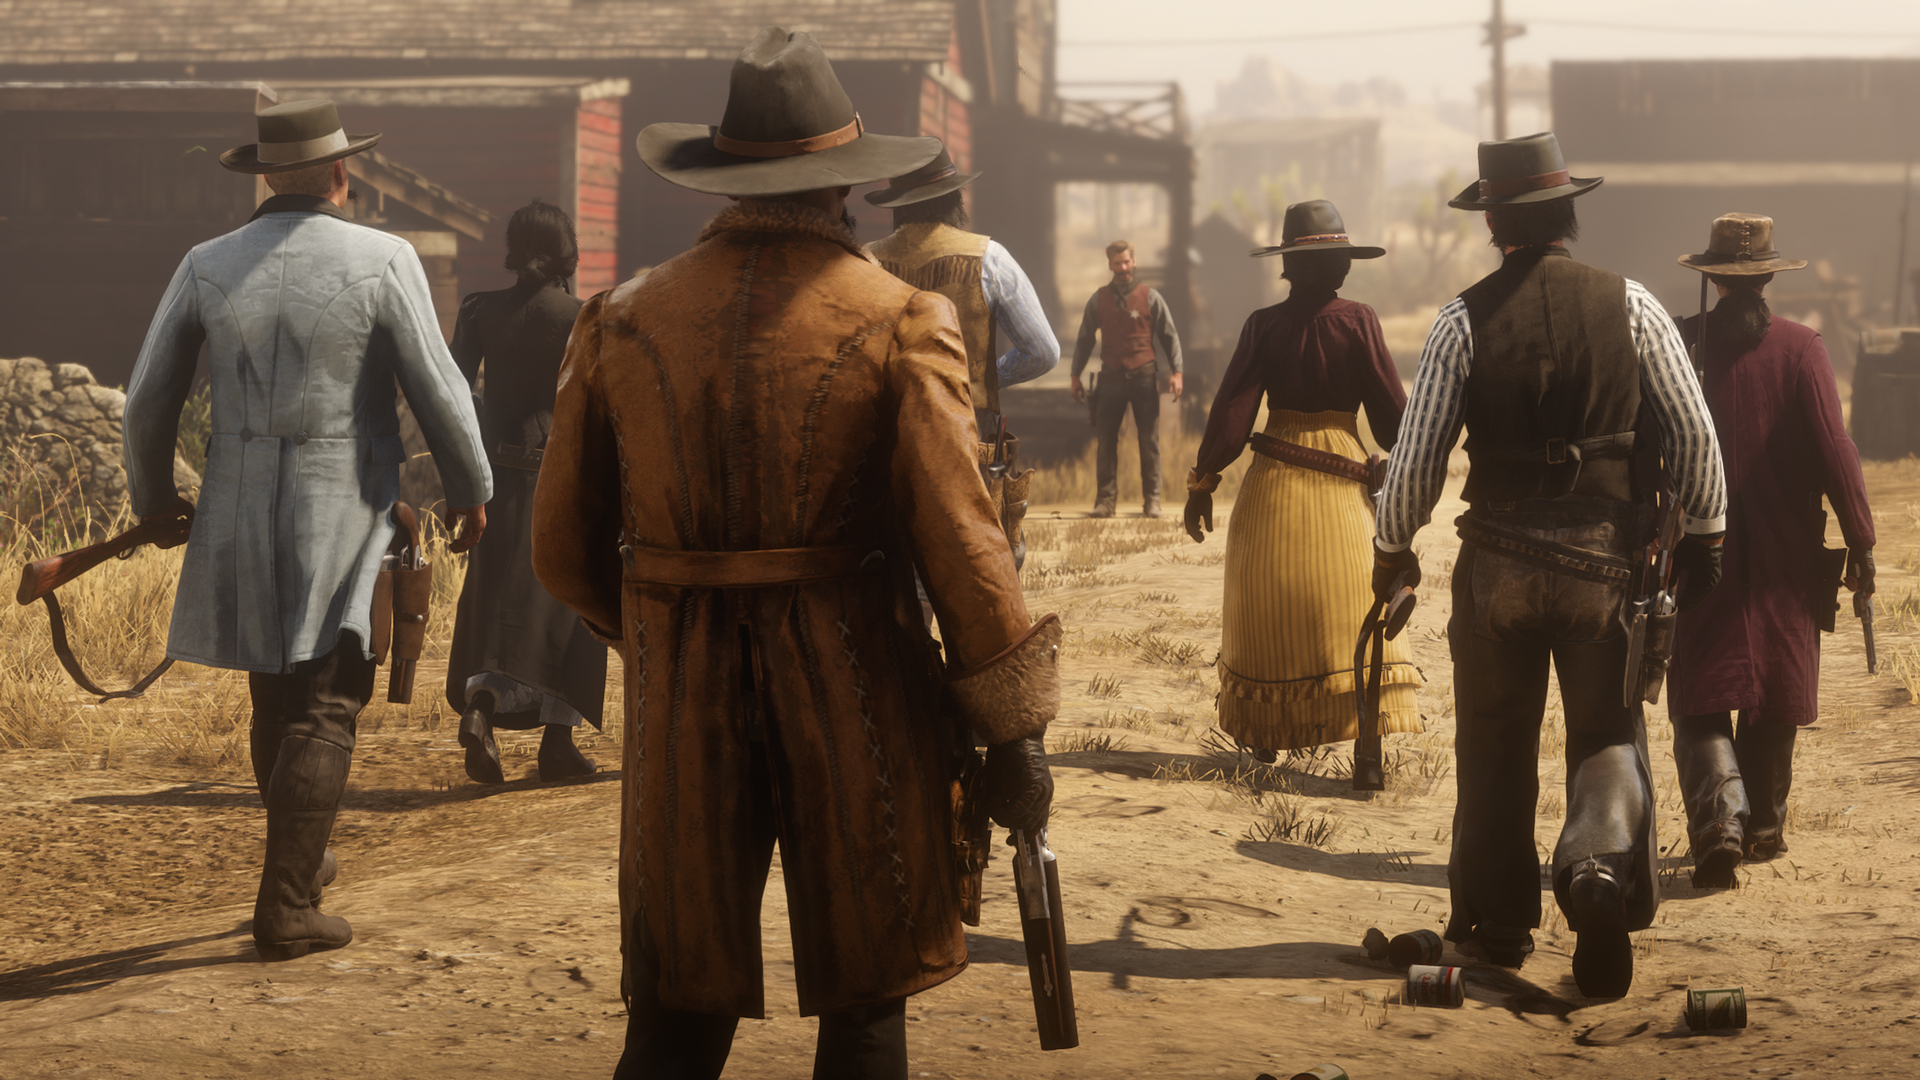 Next Red Dead Online update hits this spring